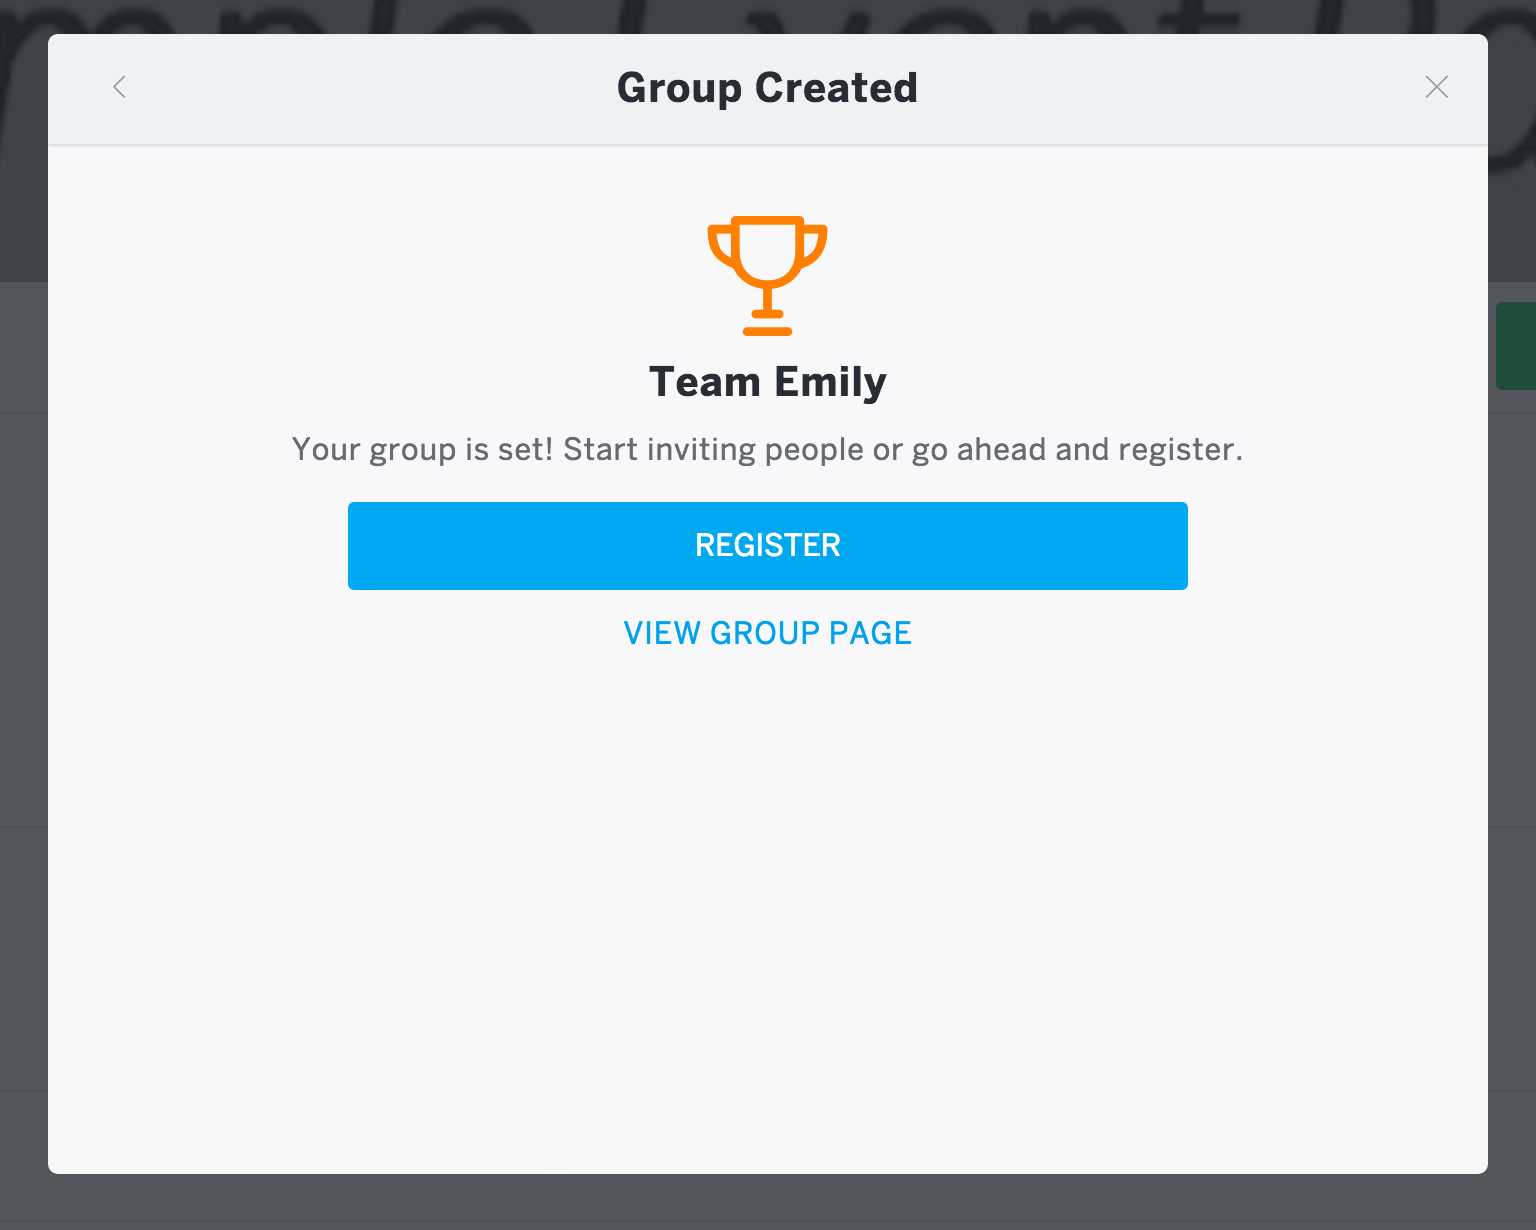 """A success message shows in the """"Group Created"""" form to confirm that your group is live and others can now join. Click """"Register"""" to register for the event as a participant, """"View Group Page"""" to view your group page, or """"X"""" at the top of the form to close the form and return to the event listing."""